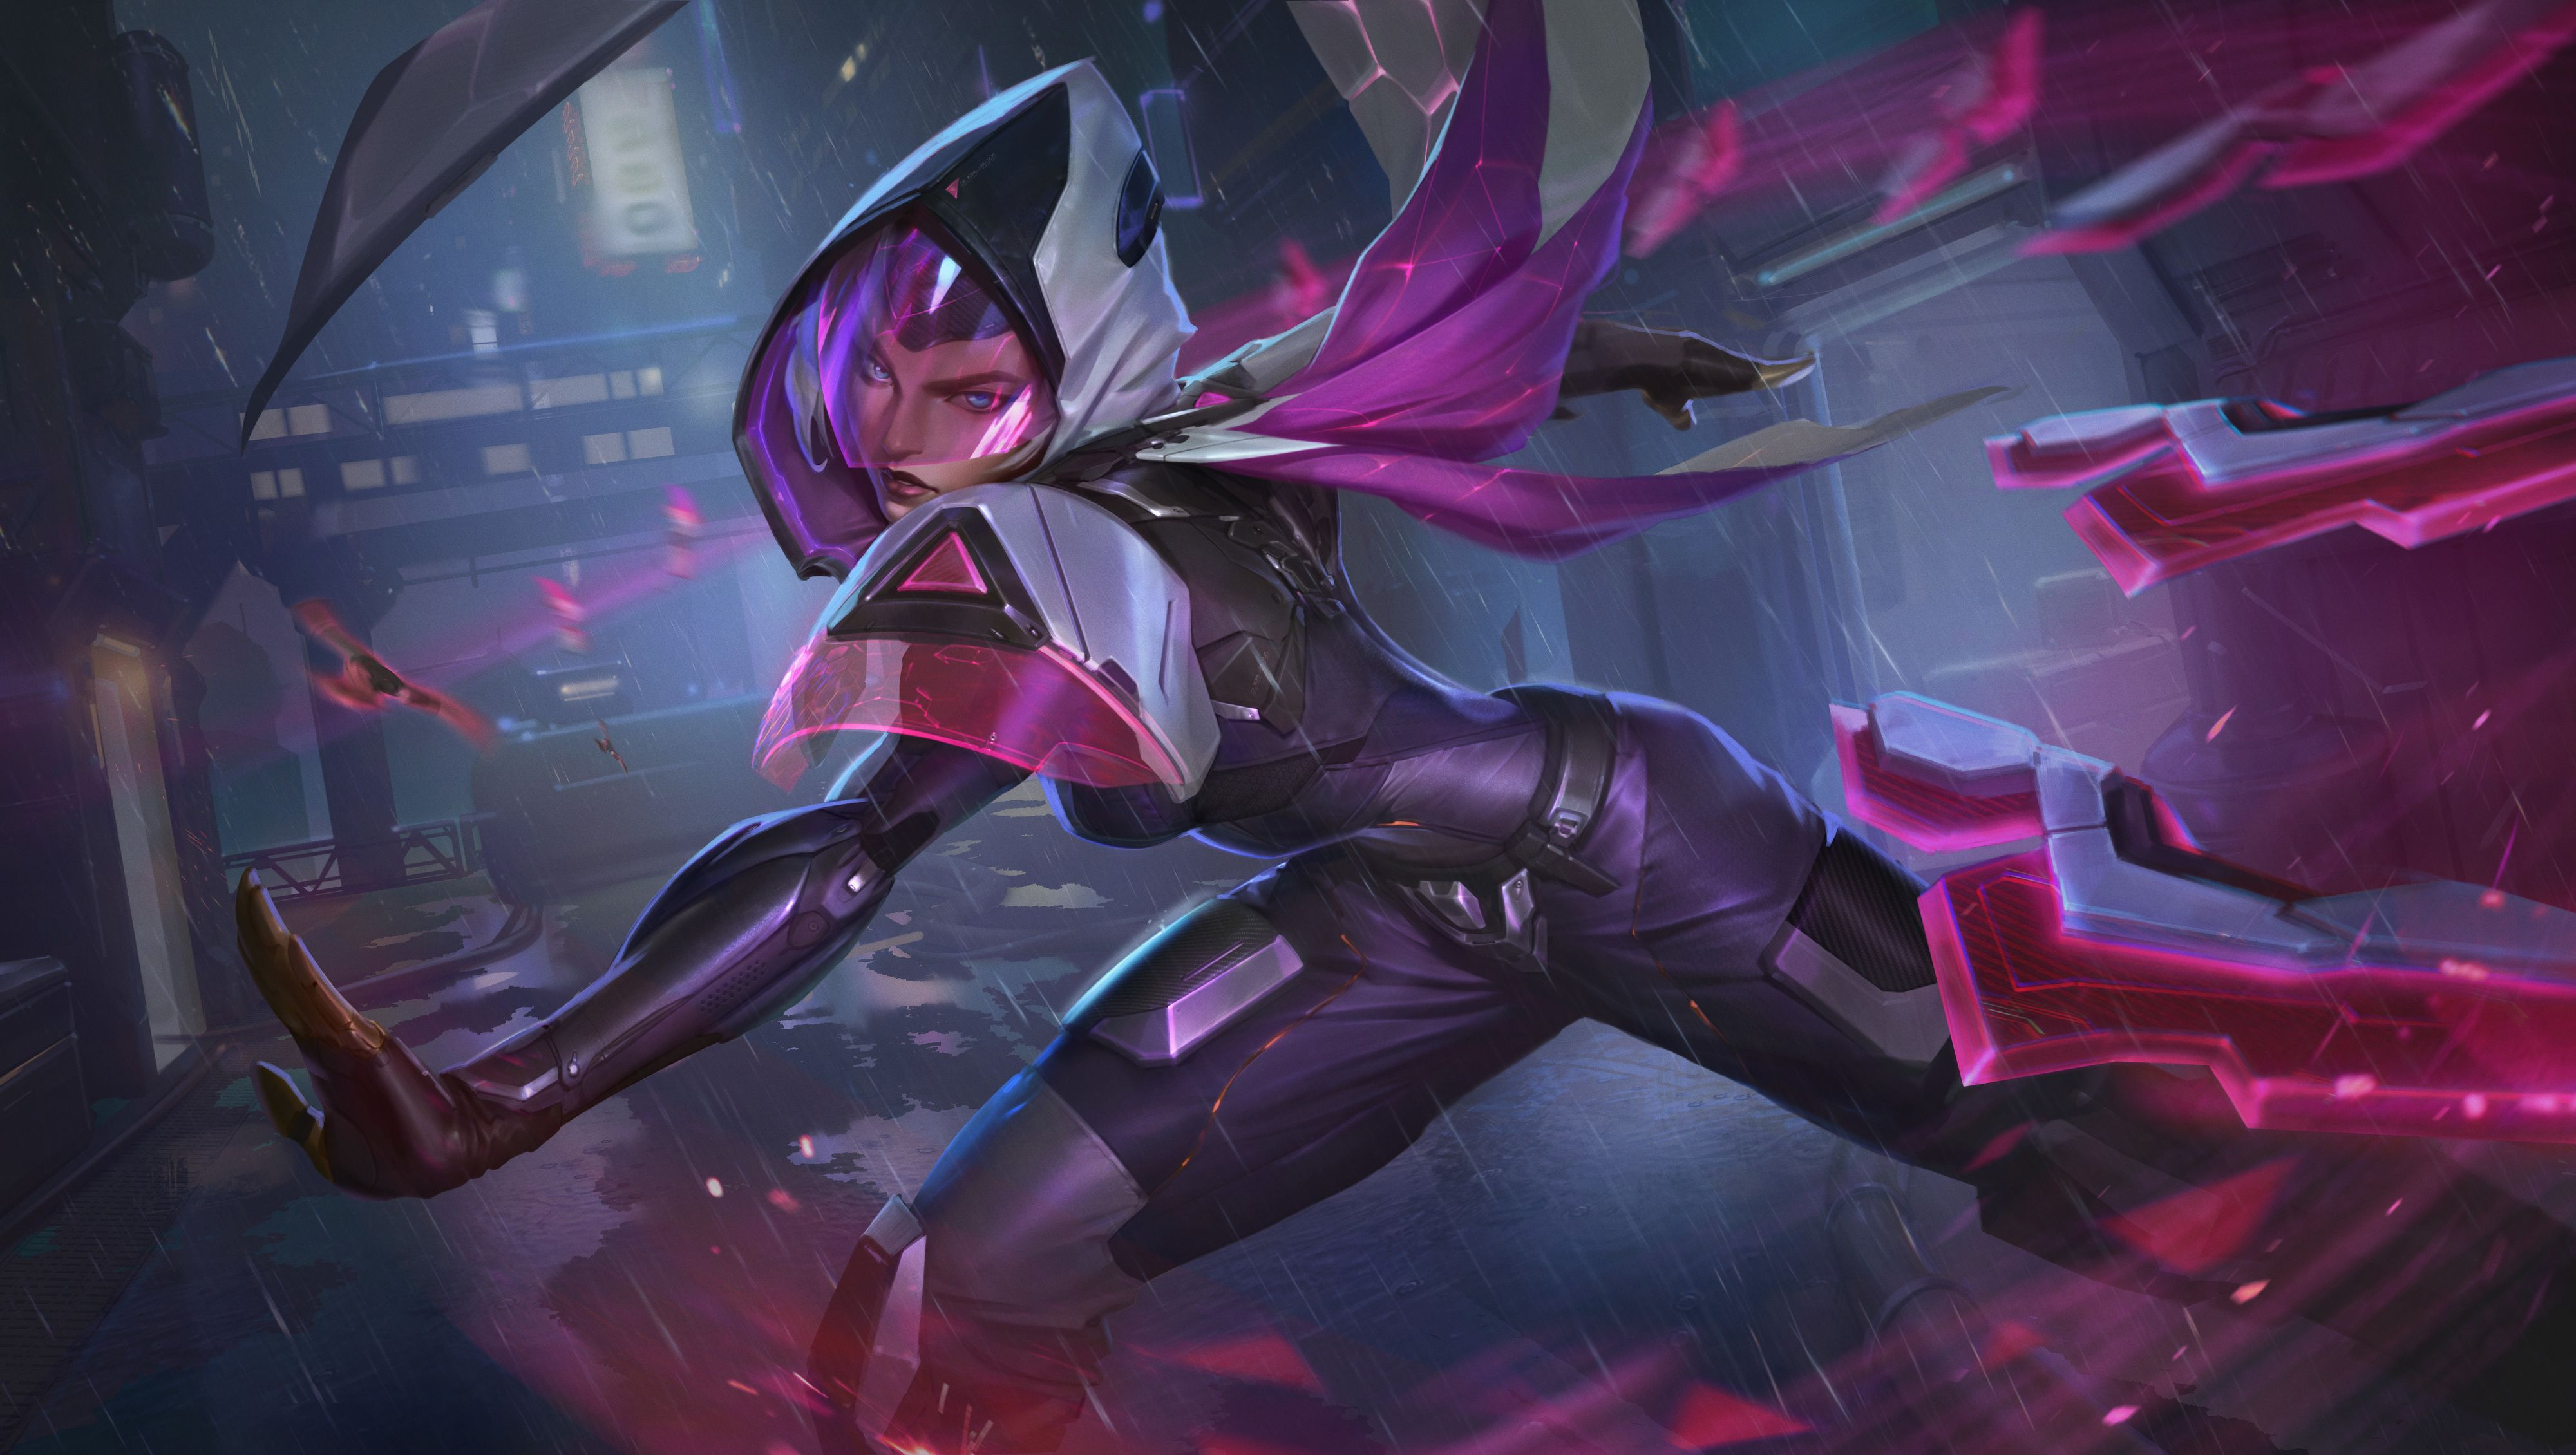 Proyecto Irelia Hd Anime Wallpapers League Of Legends Lol League Of Legends